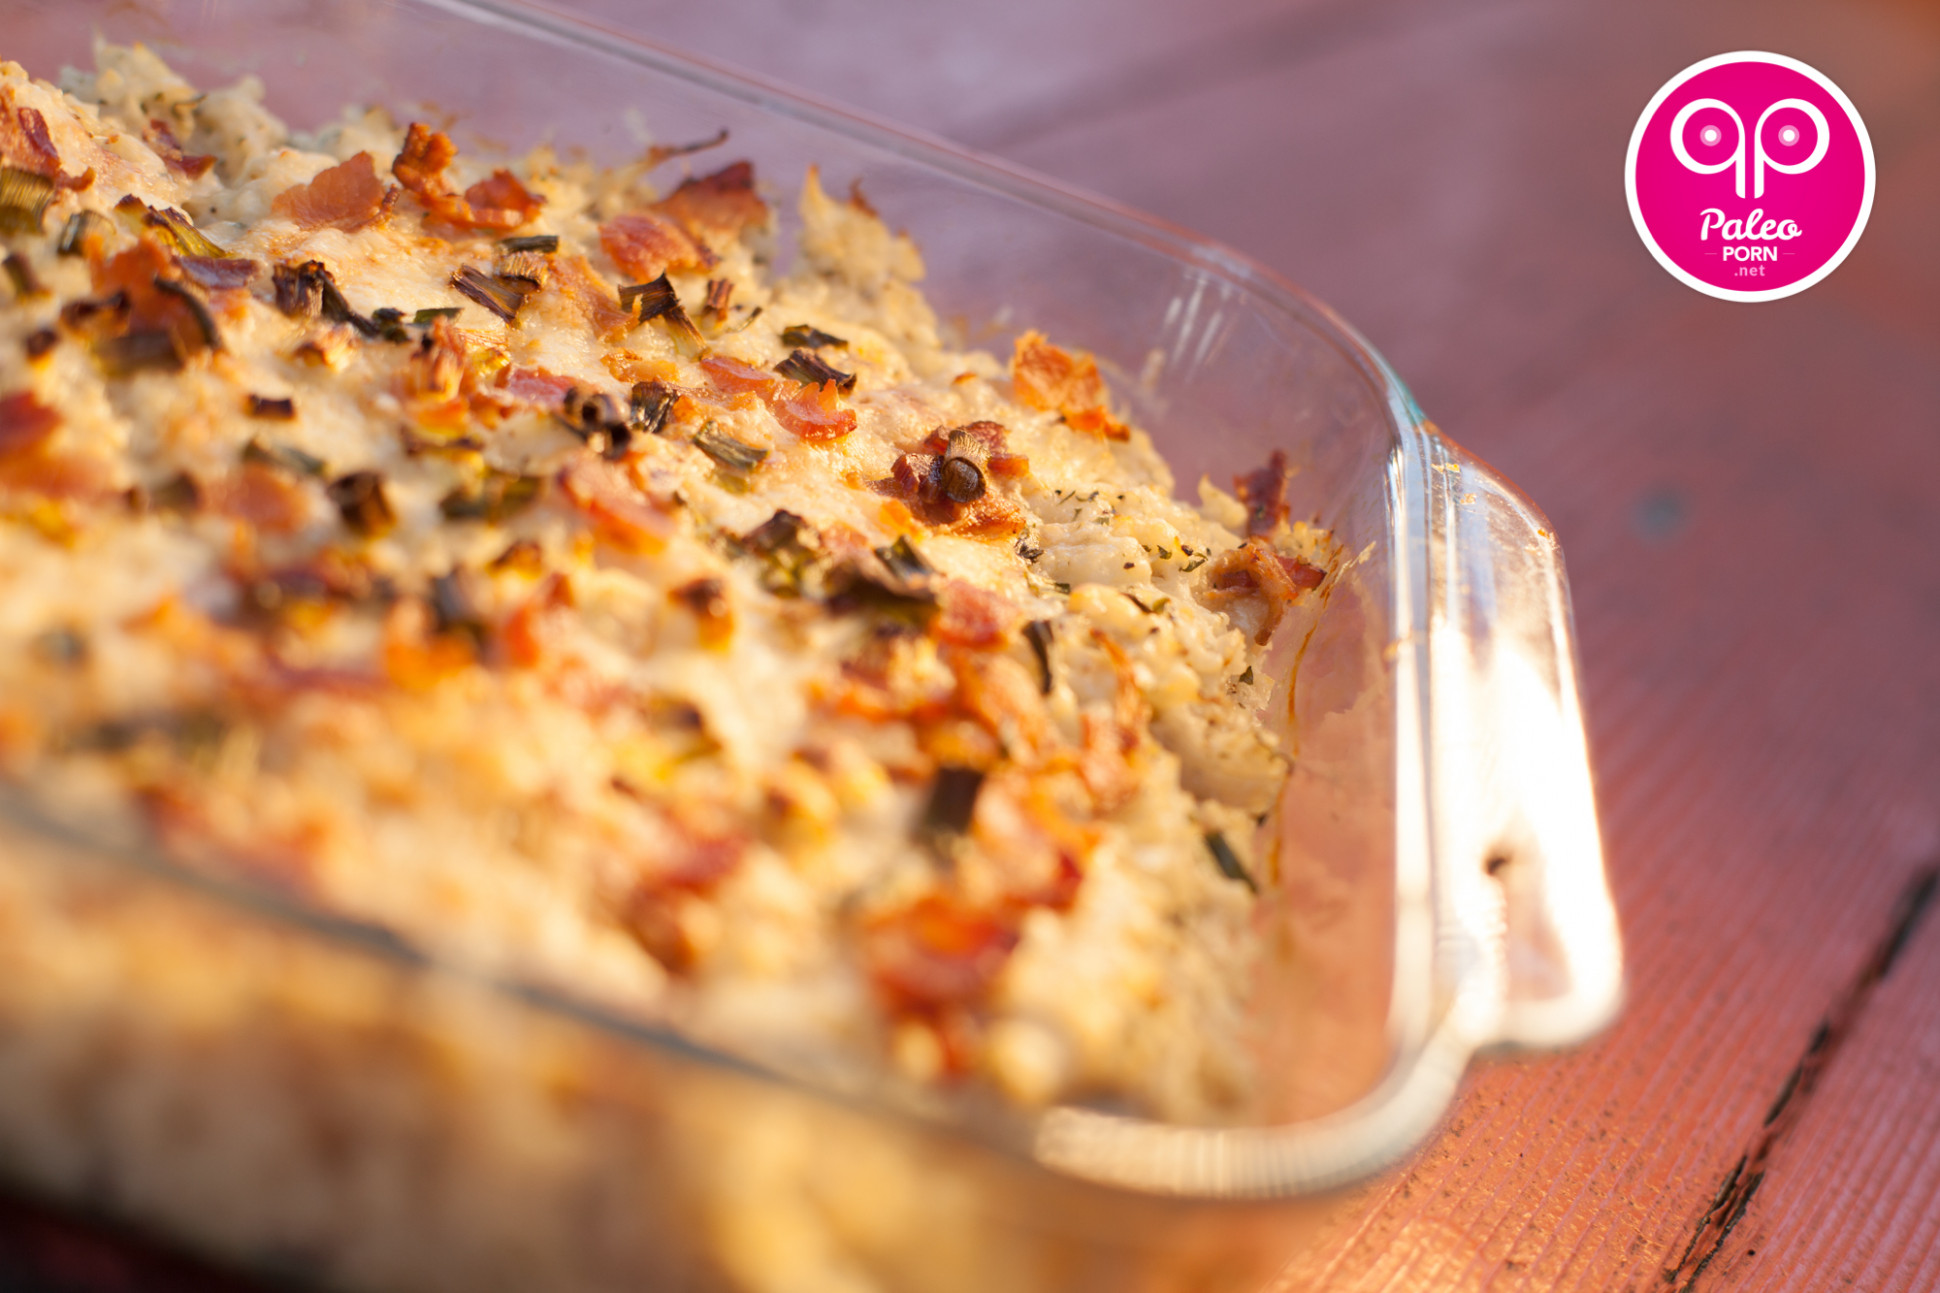 Baked Cauliflower Casserole - Paleo Porn: Steamy Paleo Recipes